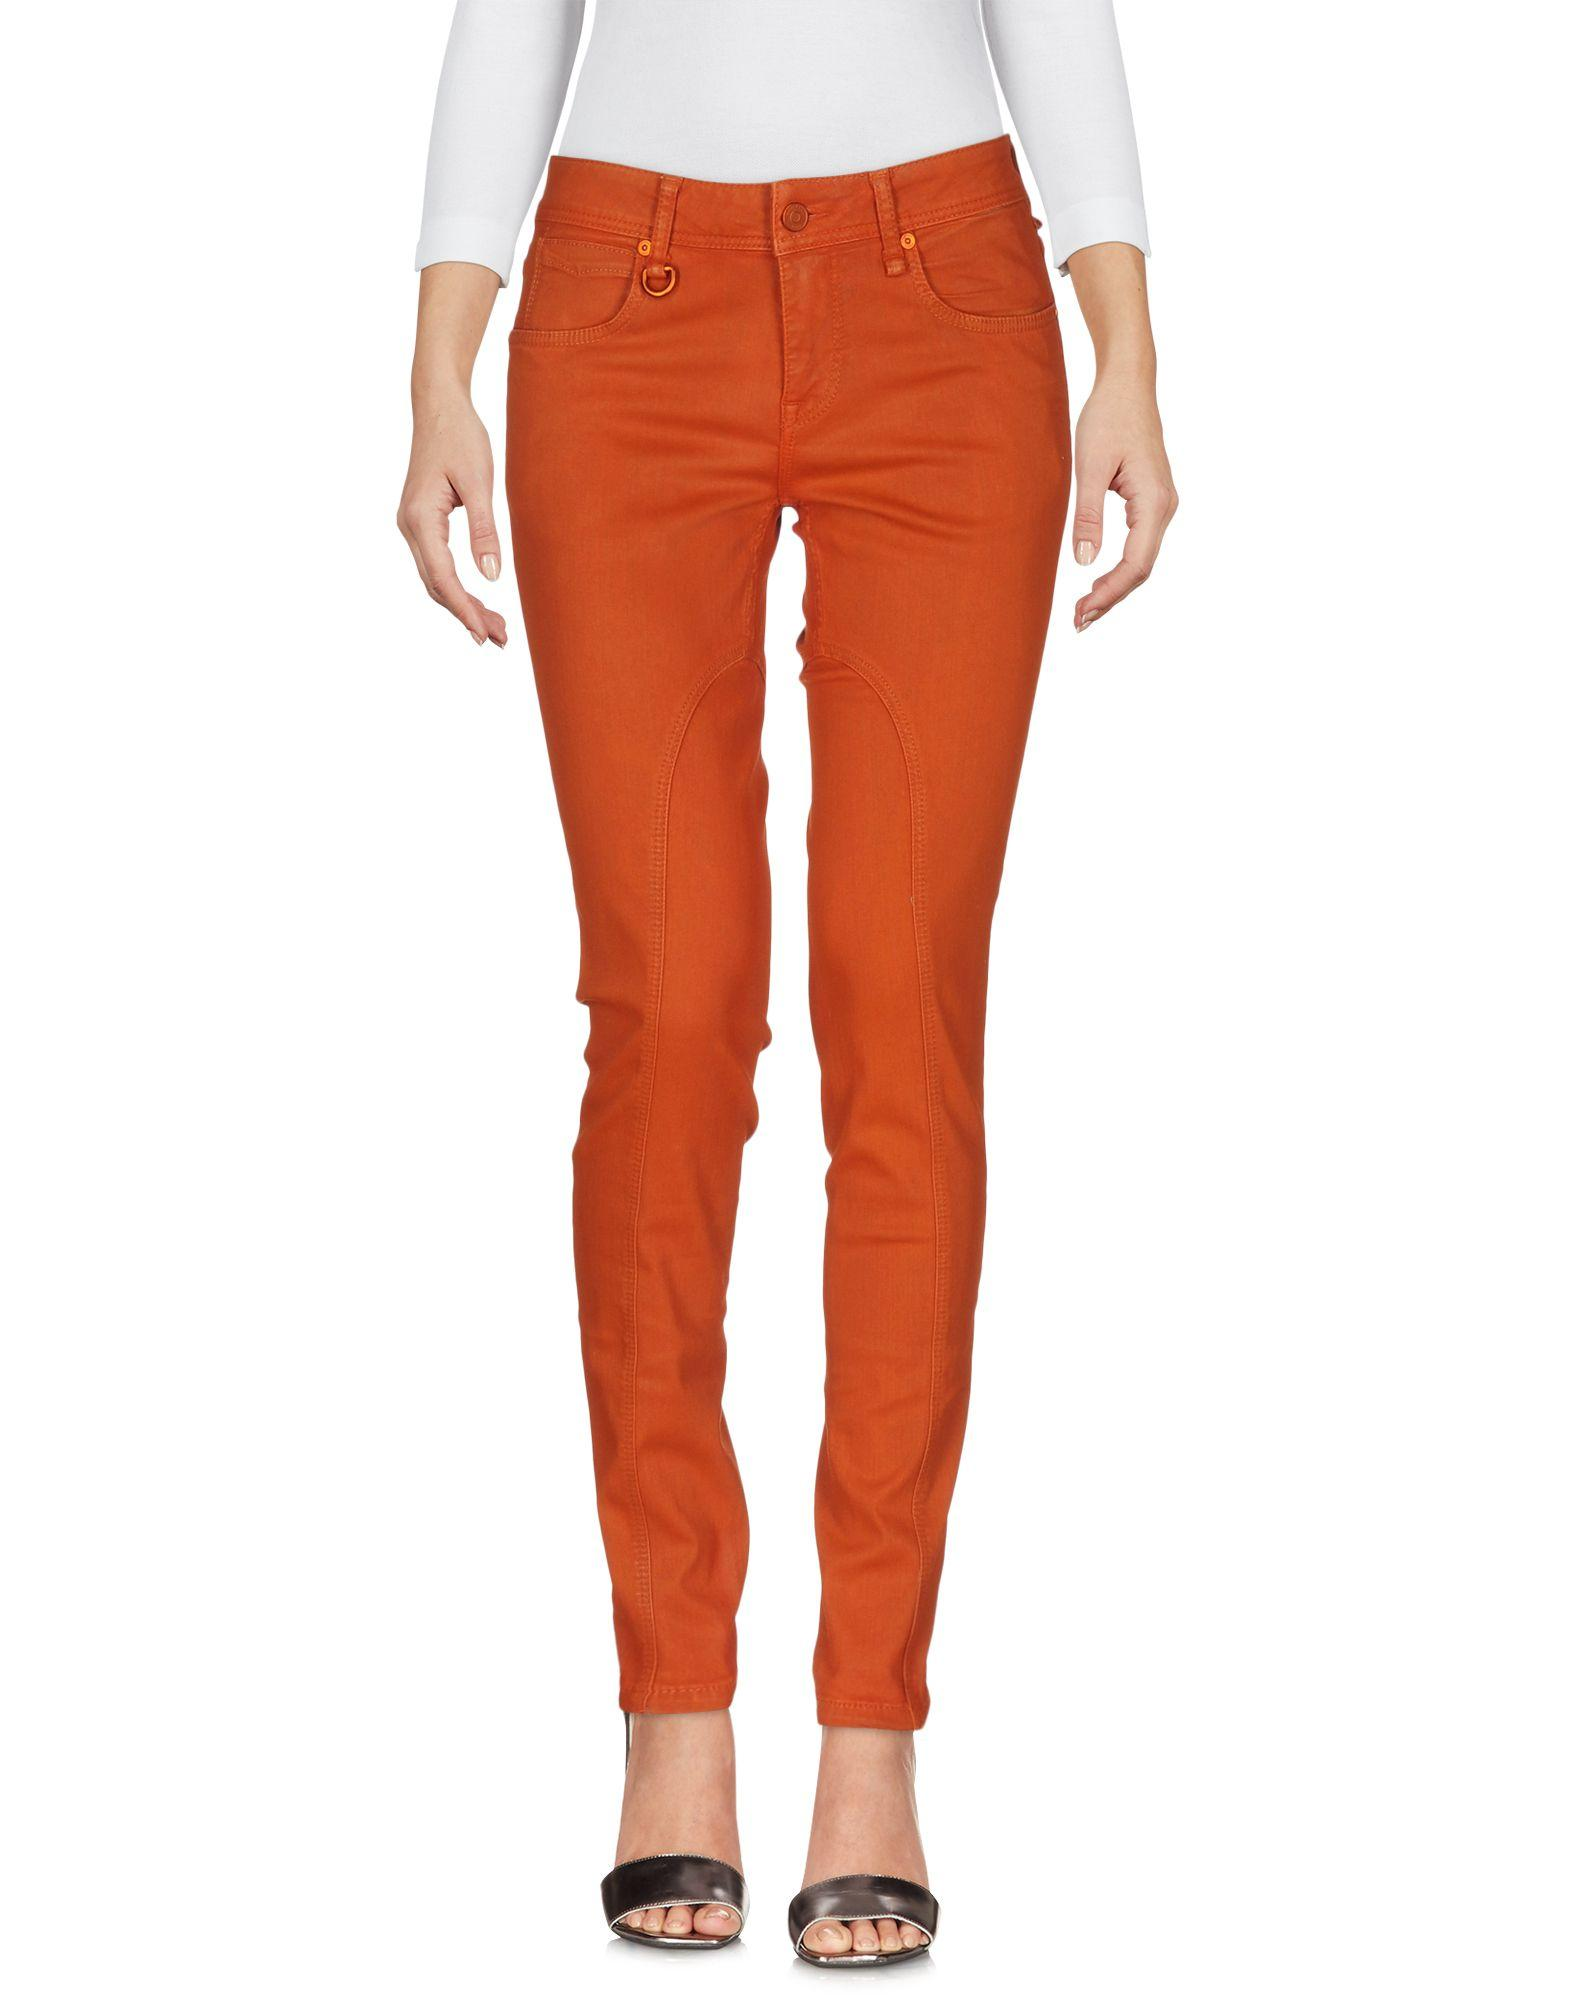 Elegant Rag Amp Bone Burnt Orange Flare Jeans In Orange  Lyst